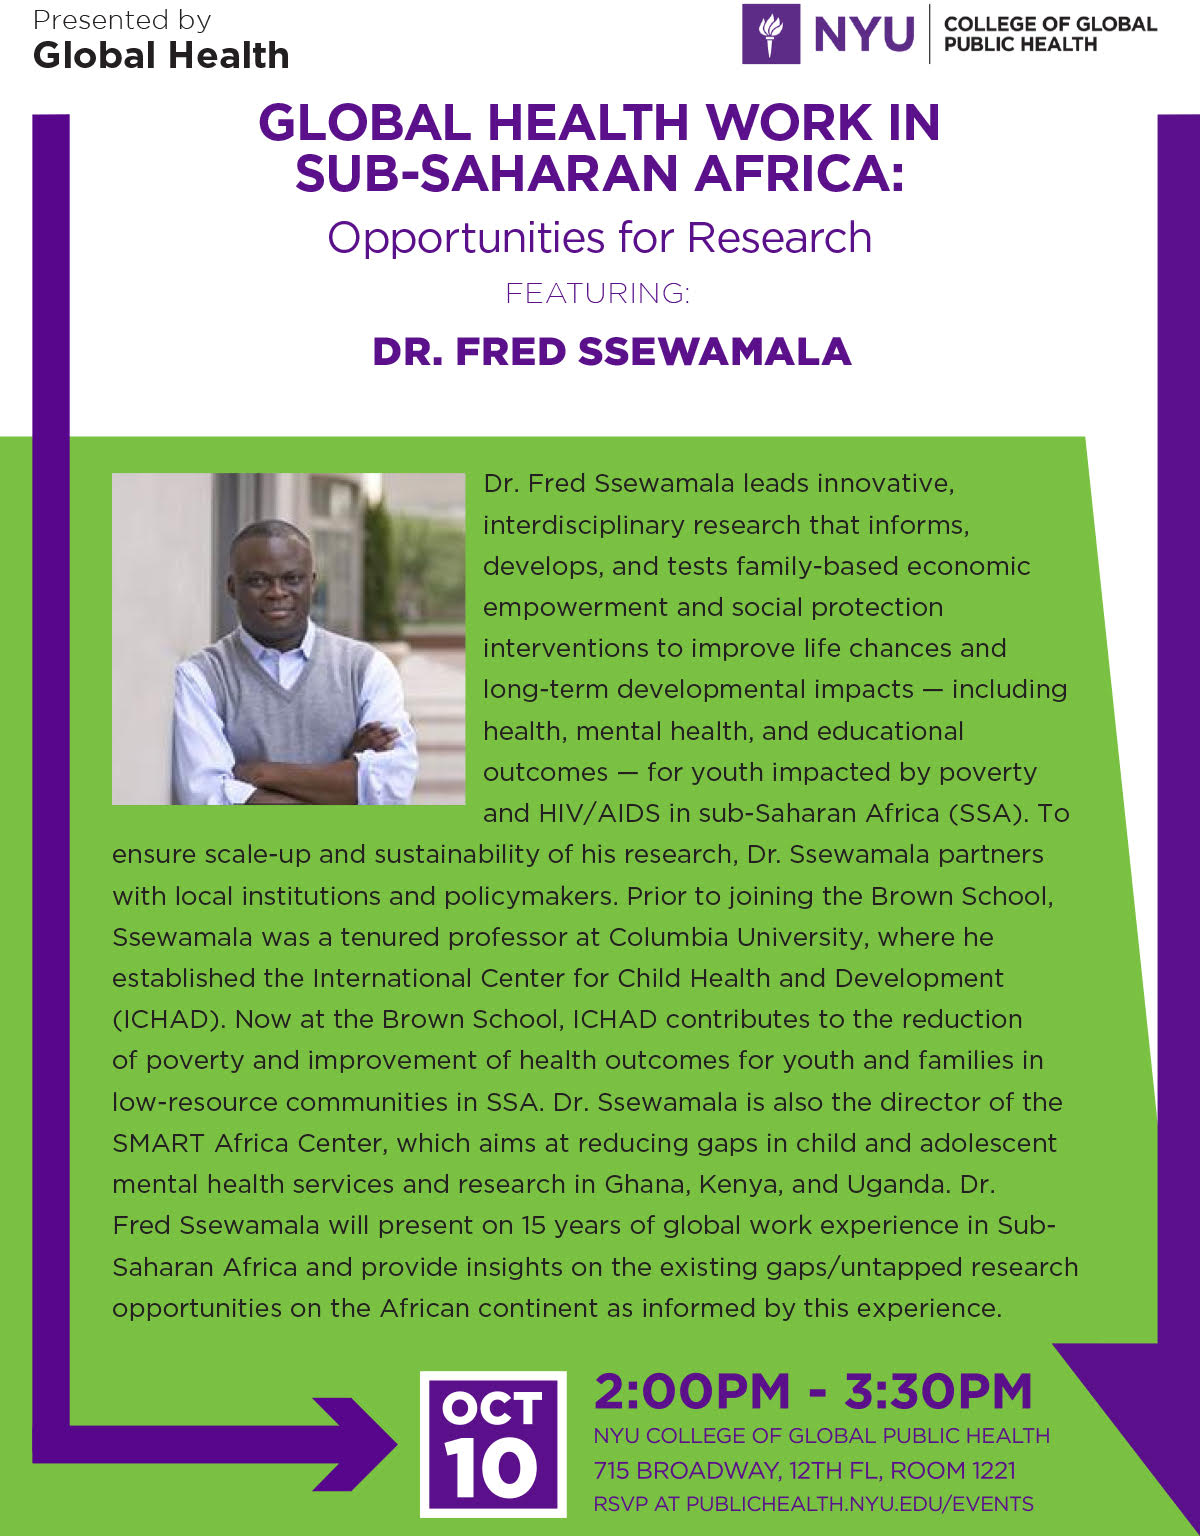 Global Health Work in Sub-Saharan Africa- Opportunities for Research.jpg